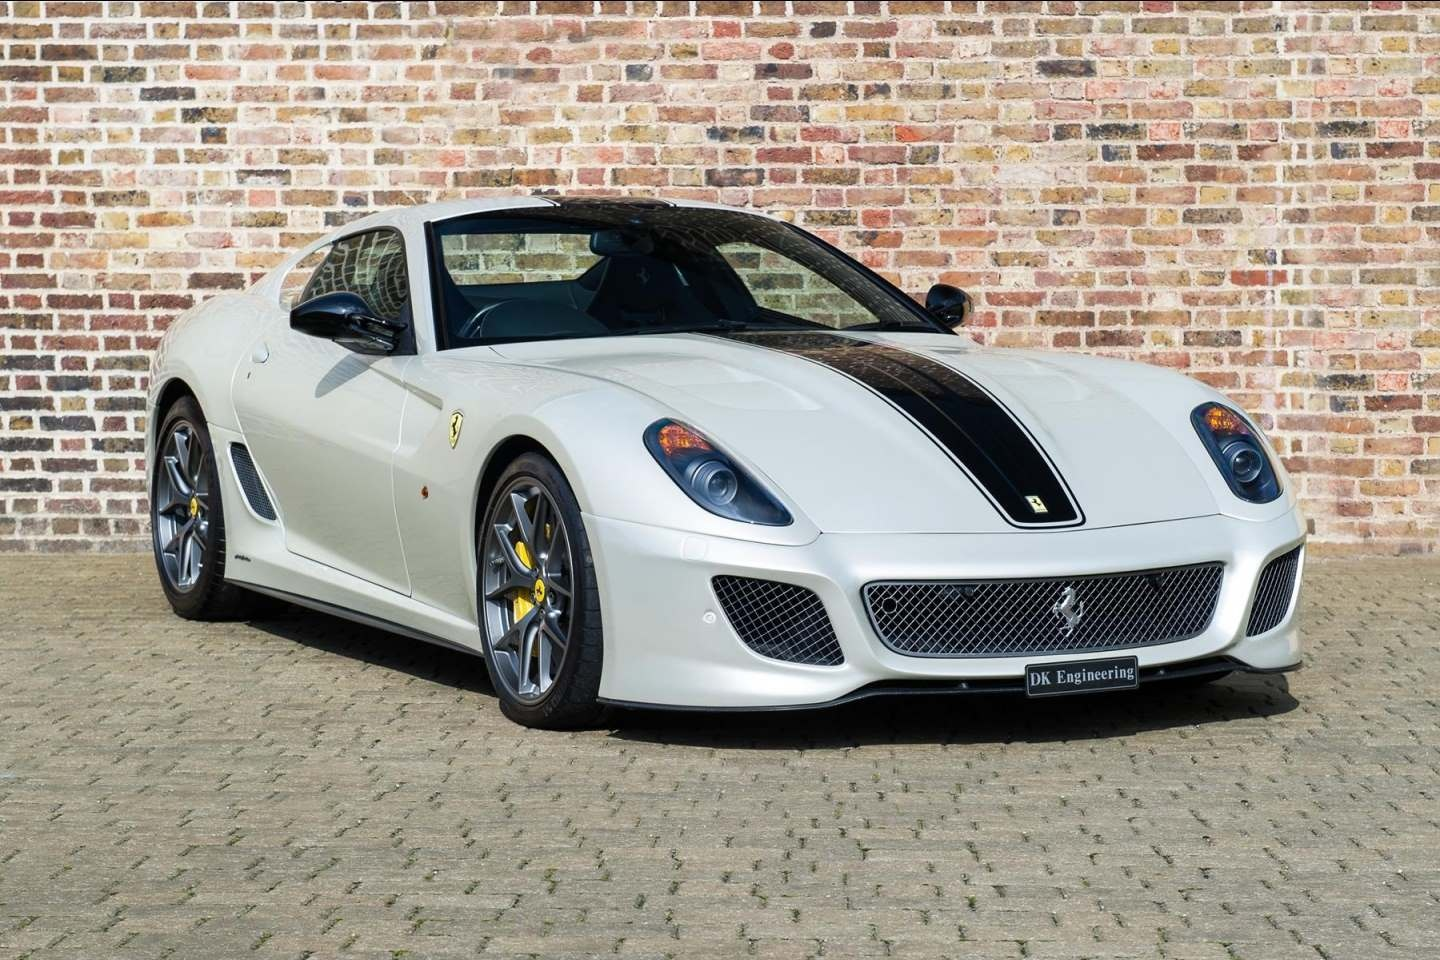 ferrari 599 gto for sale vehicle sales dk engineering. Black Bedroom Furniture Sets. Home Design Ideas